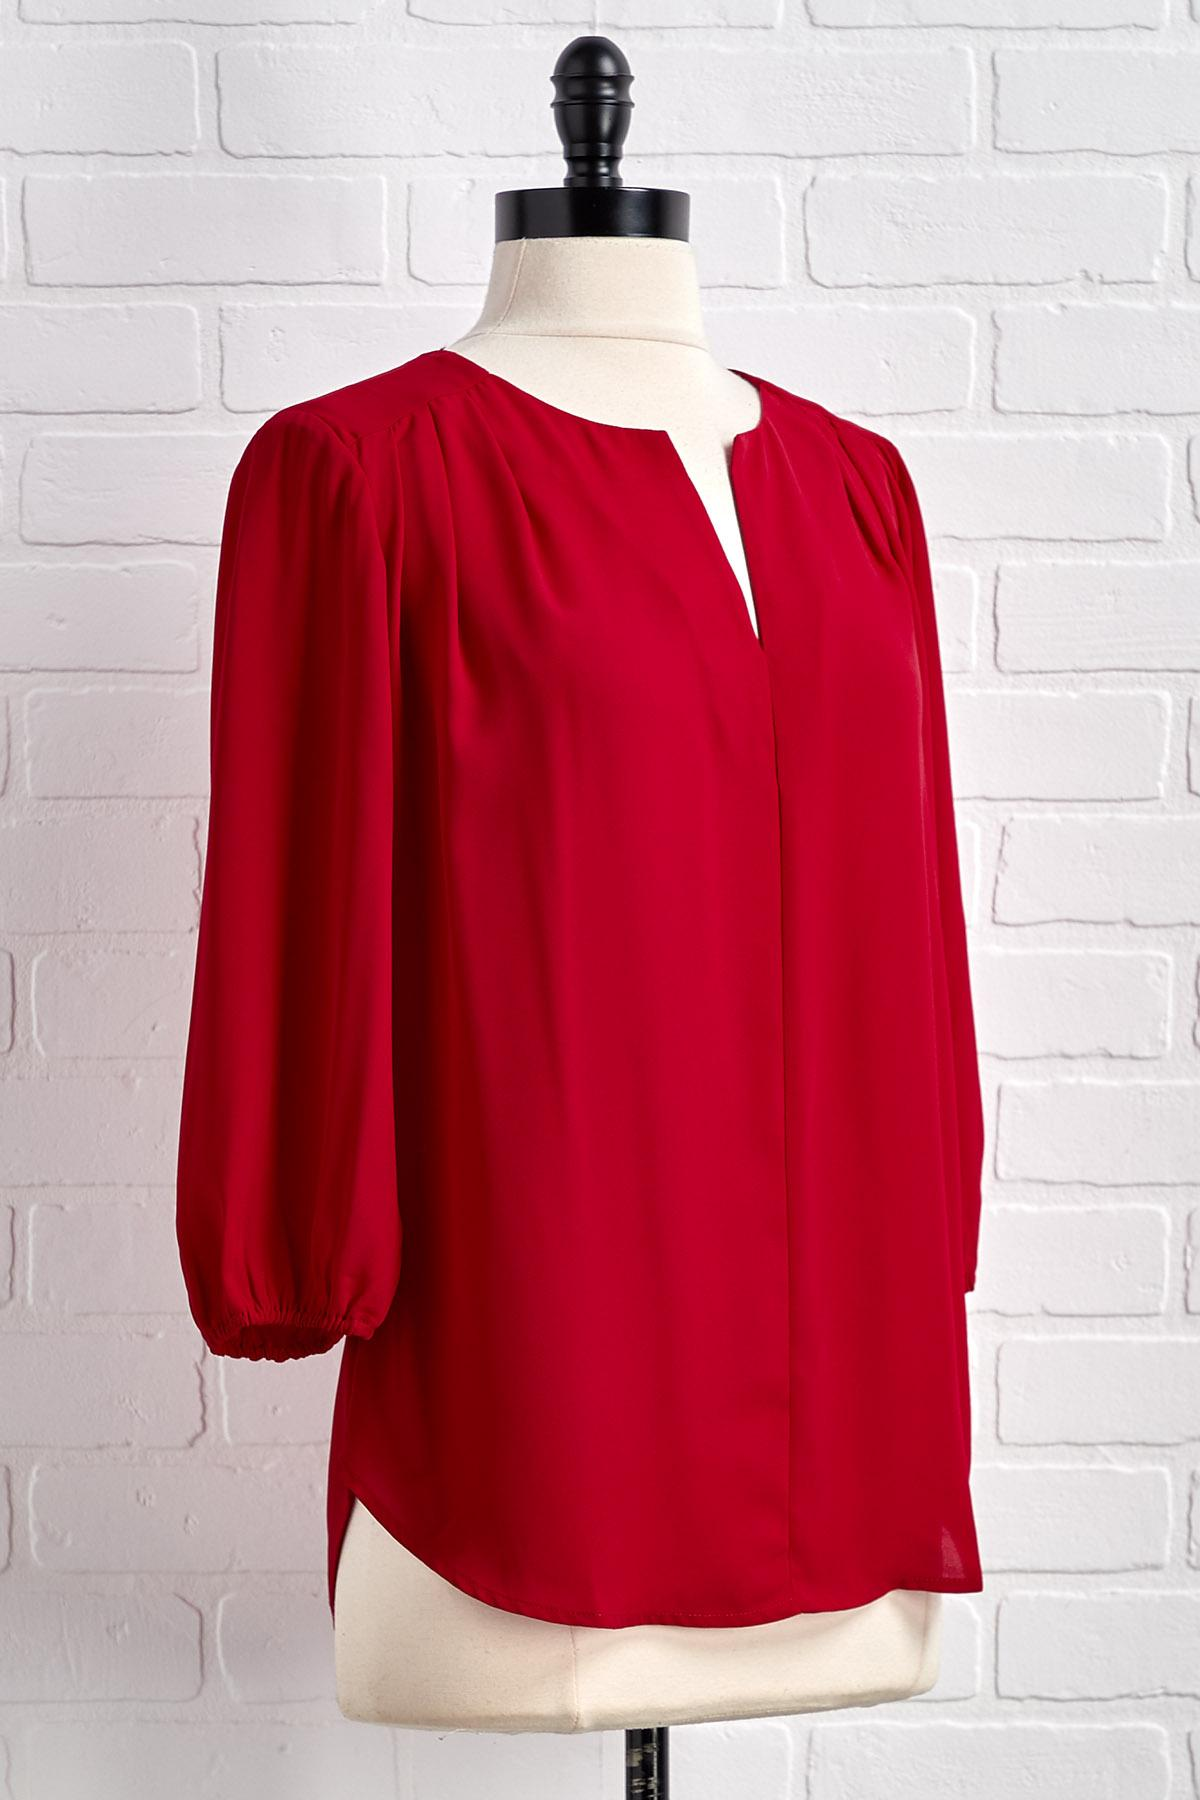 A Little Red Pleats Top